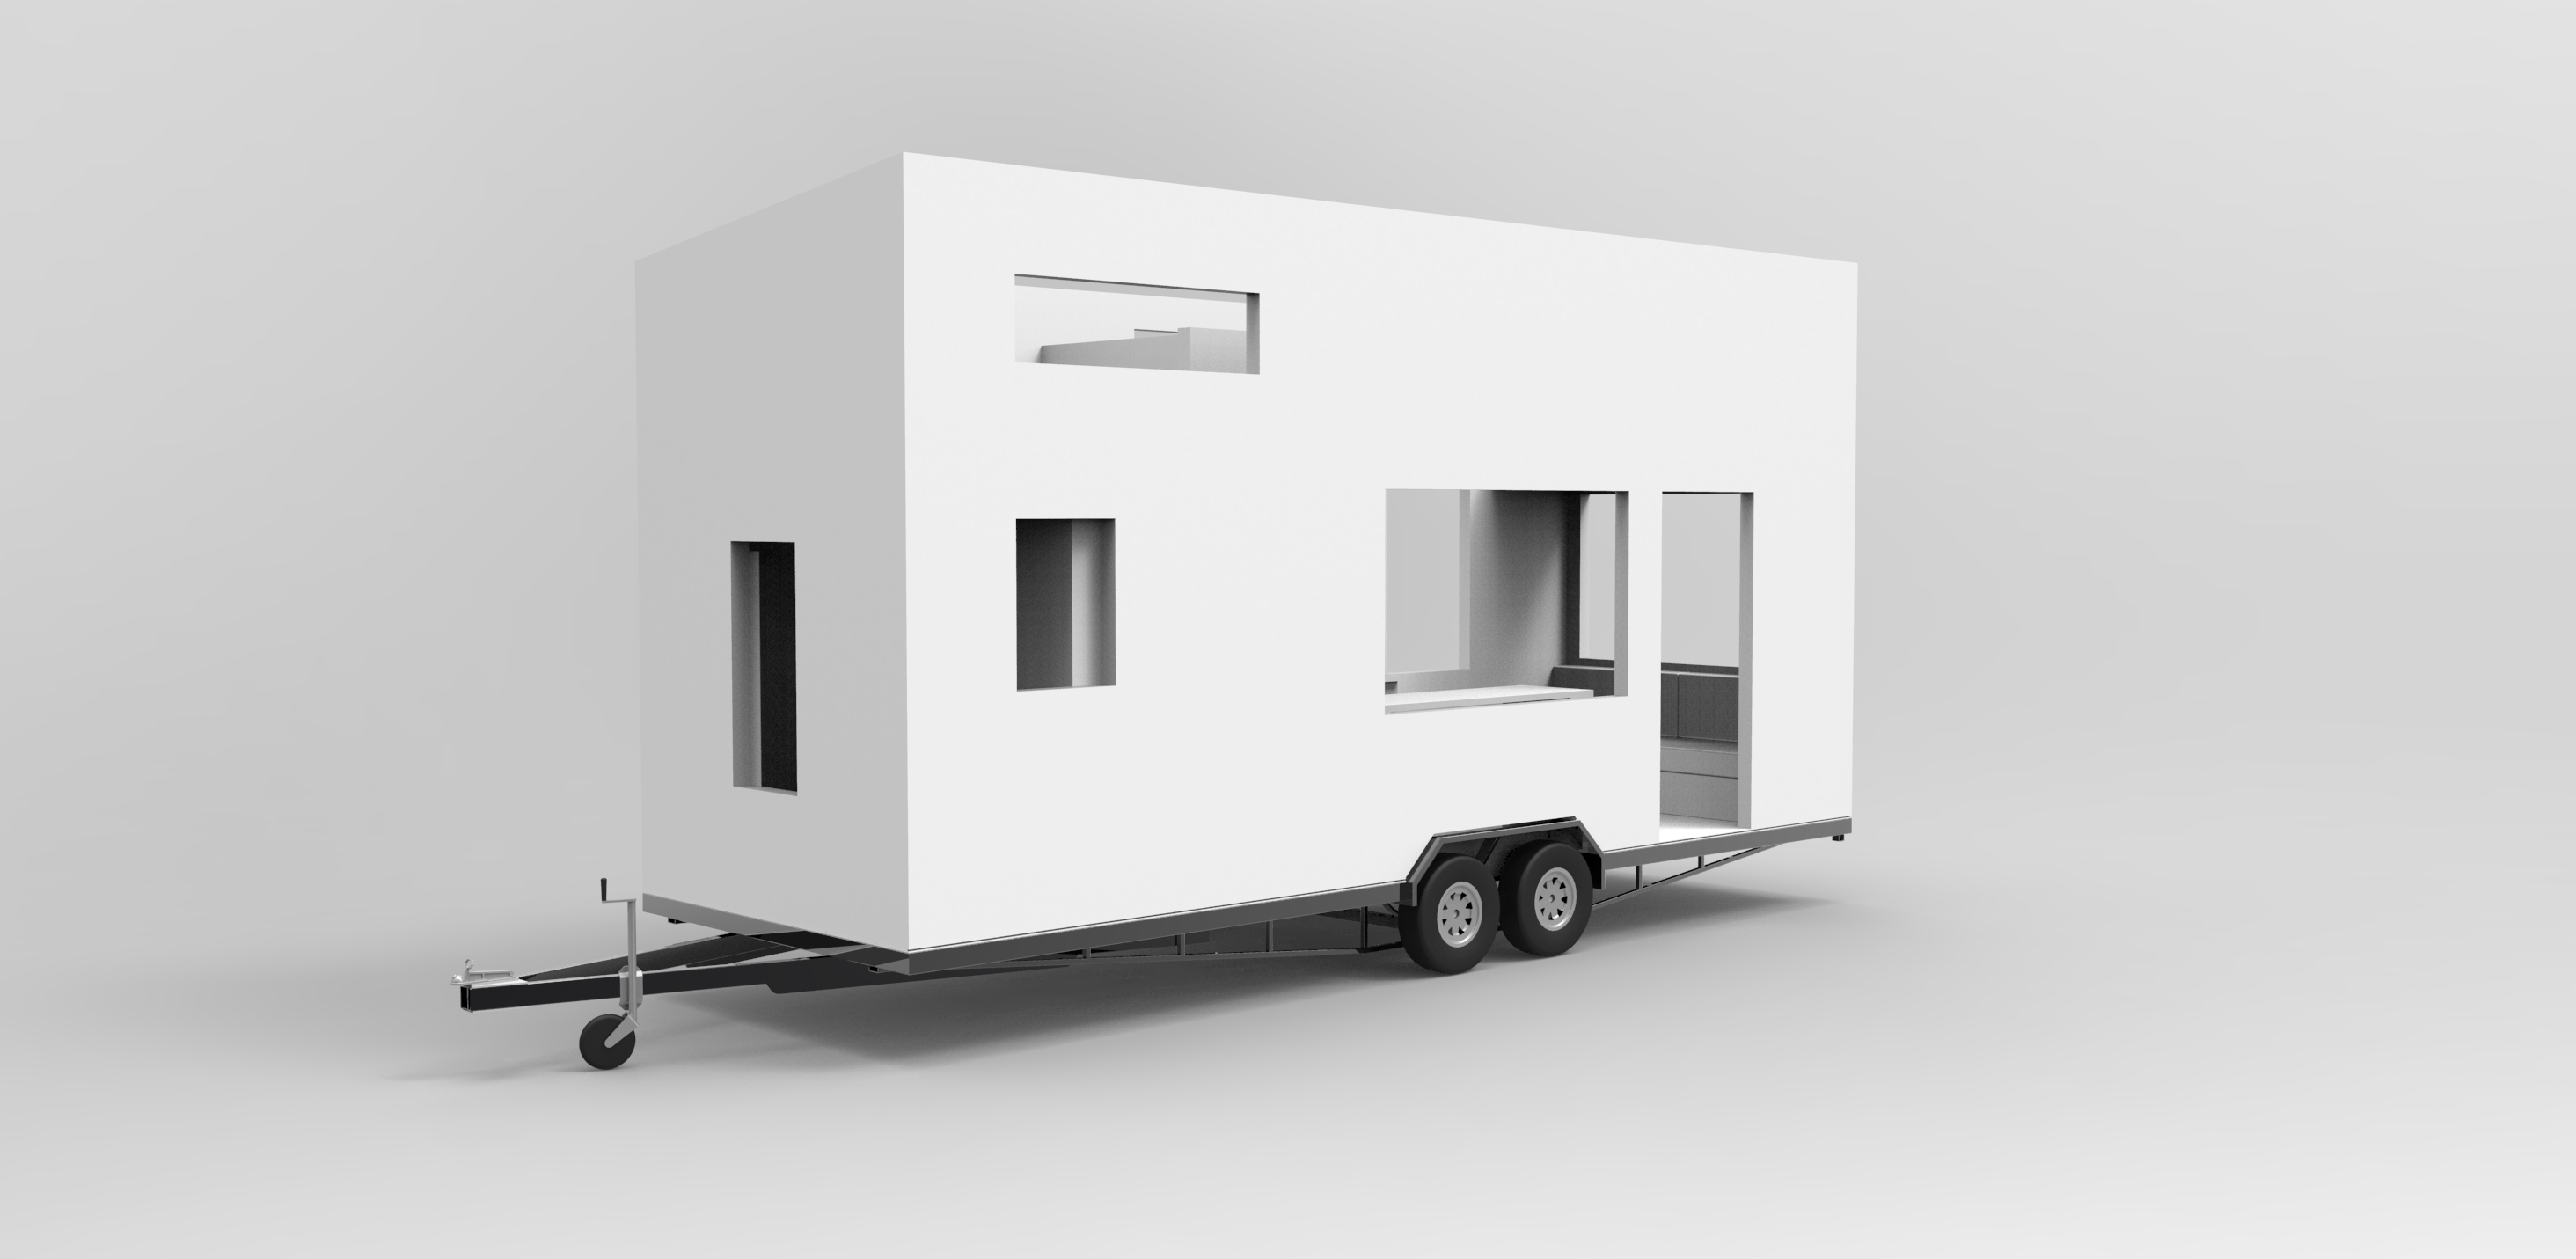 Living Small - Christchurch New Zealand - Design completed by TINKA on tiny house 3d model, tiny house sketch up, tiny house fad, tiny house blueprints,